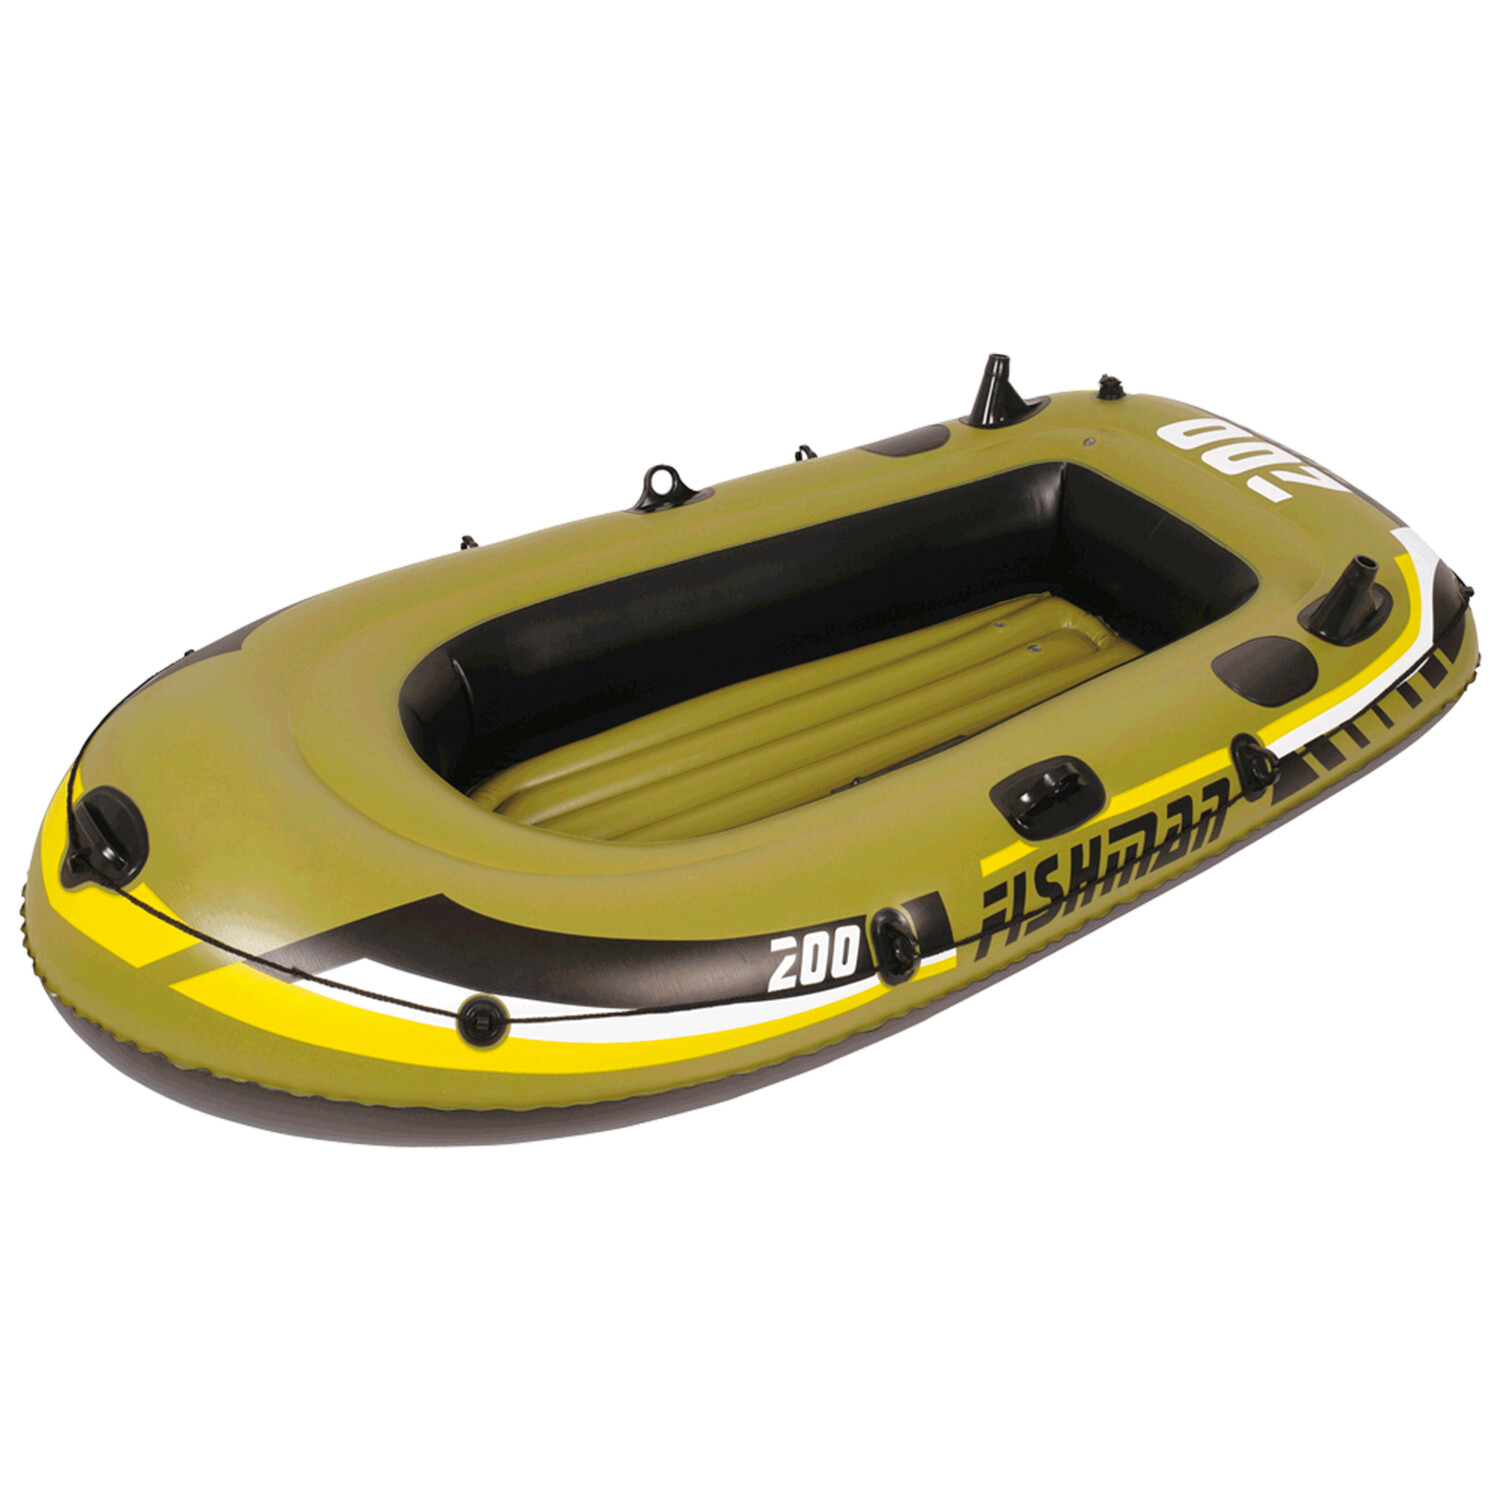 Bote Inflable Reforzado 1 Persona Ecology Fishman